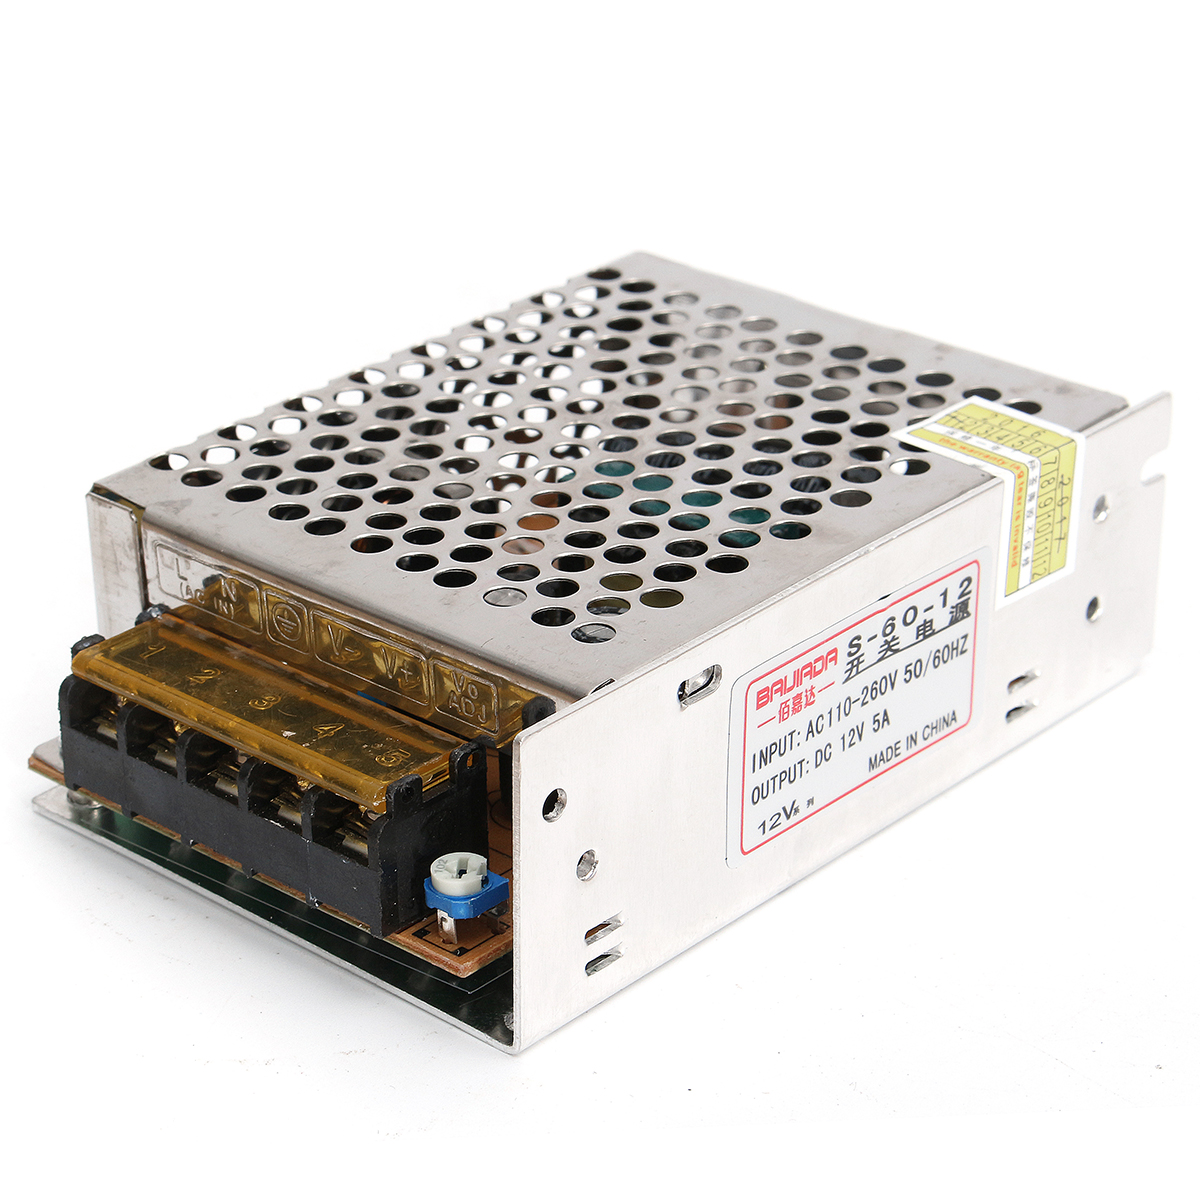 AC 220V To DC 12V 5A 60W Power Supply Lighting Transfor